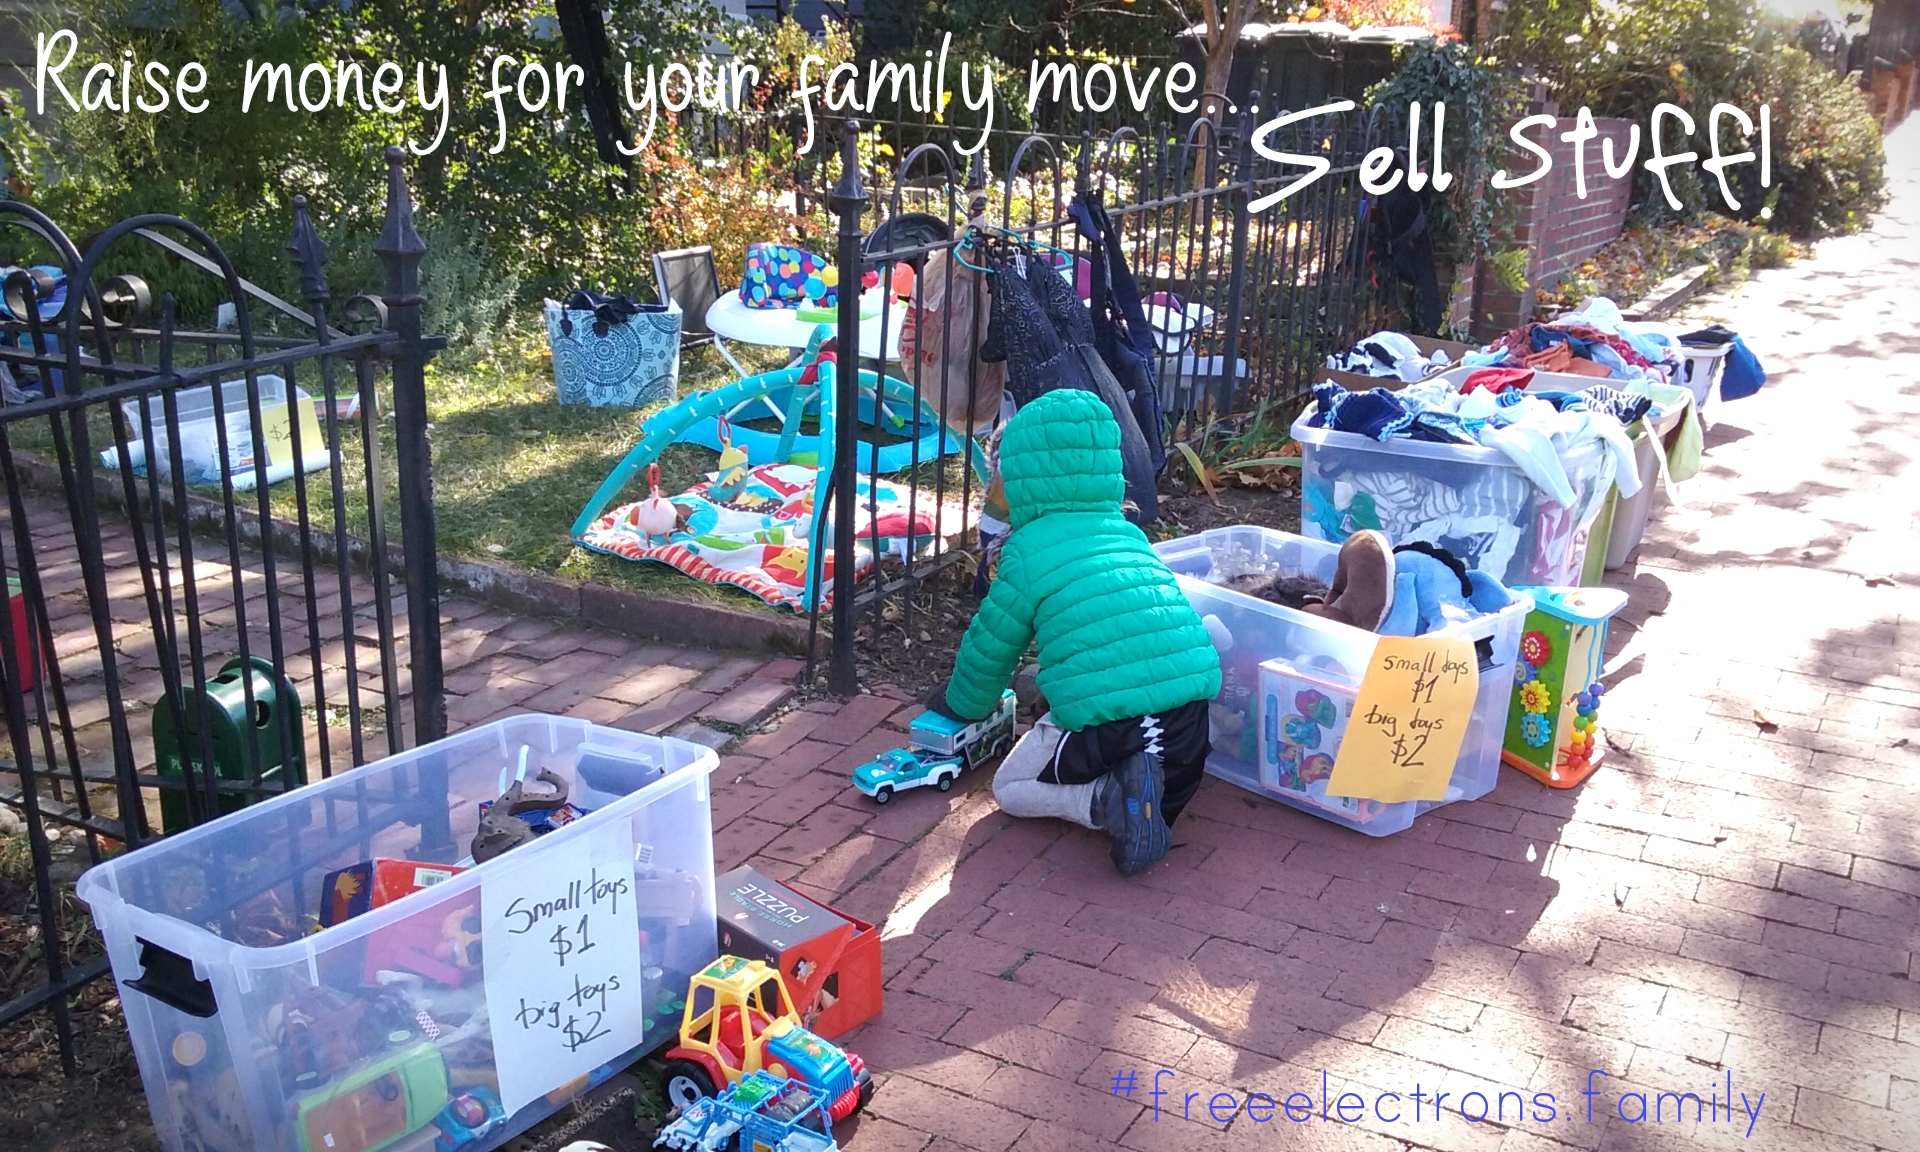 Picture of a yardsale with toys in plastic boxes and stuff on the lawn in a small yard and on the sidewalk.  A little kid, back turned, plays with a car toy.  Fundraising for a family move abroad.  Getting rid of all the things you think you need but don't even know you had.  Sell s*it!  It will set you FREE!